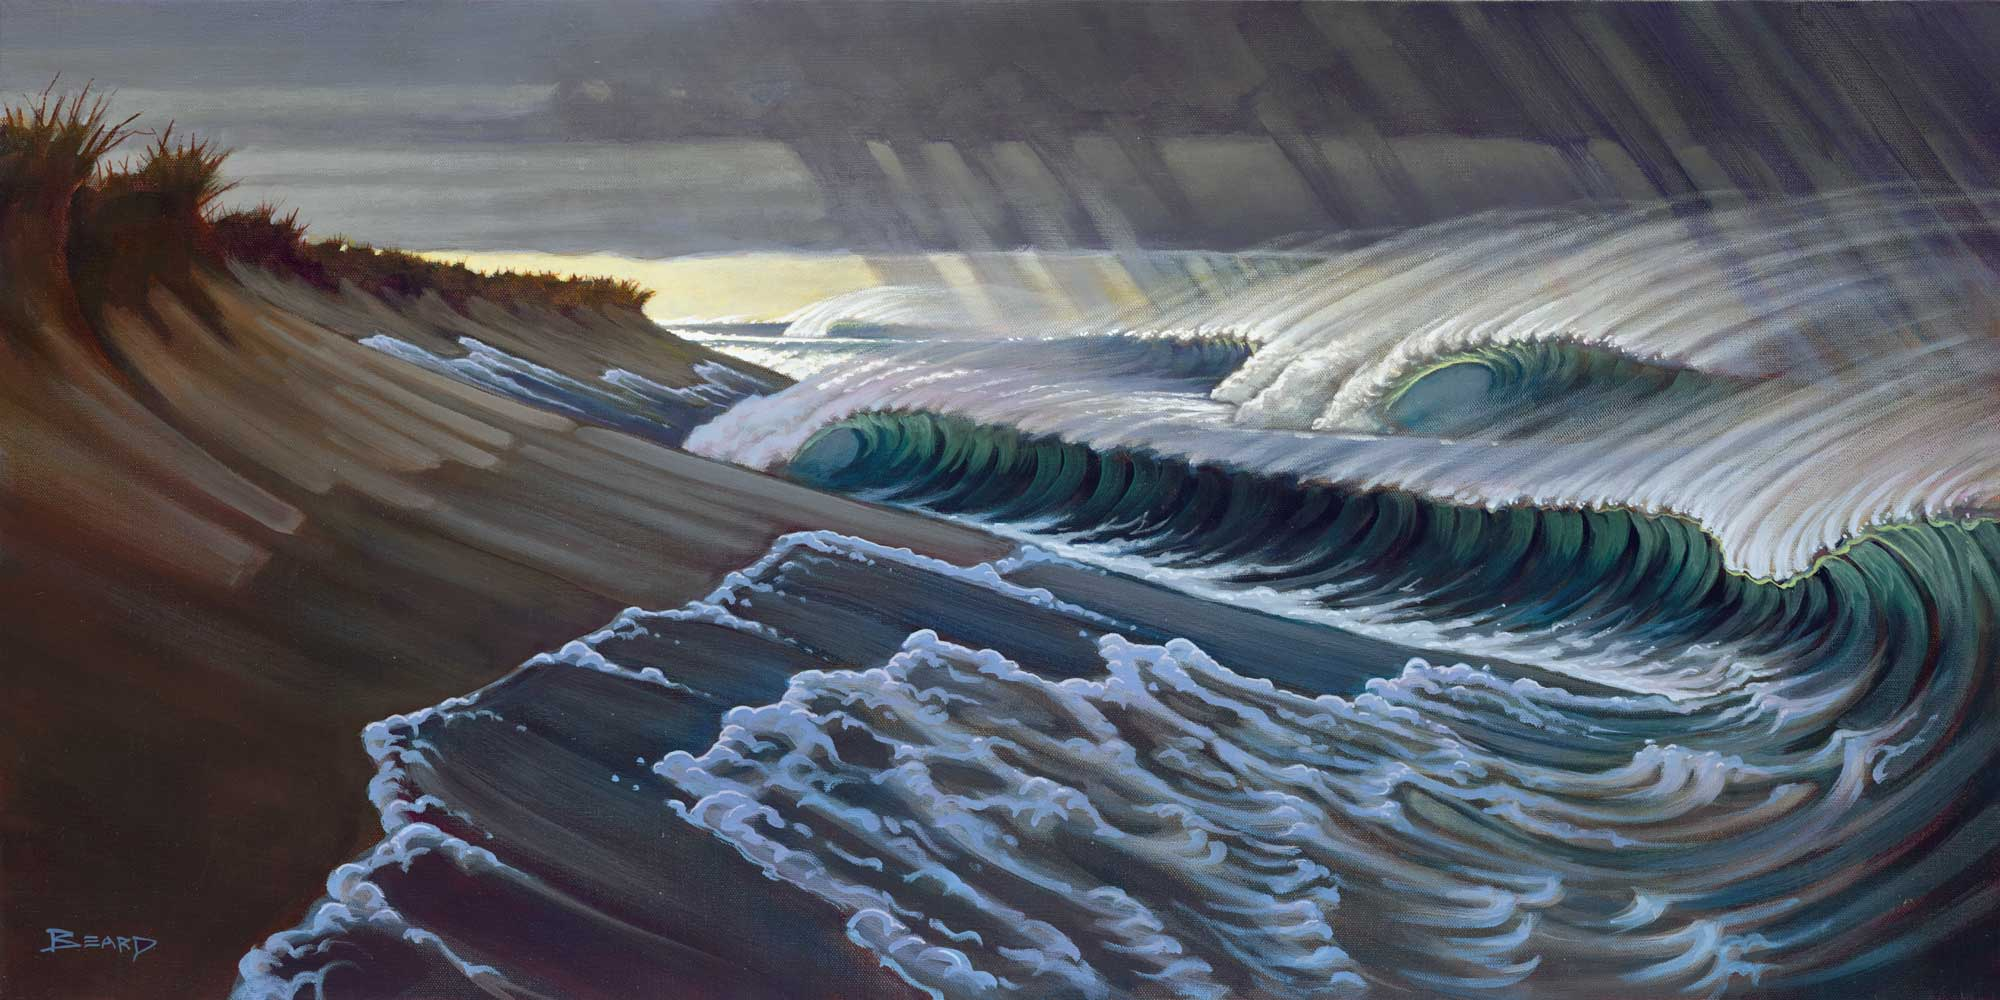 Painting of a dark storm and waves breaking off a beach in Northern California